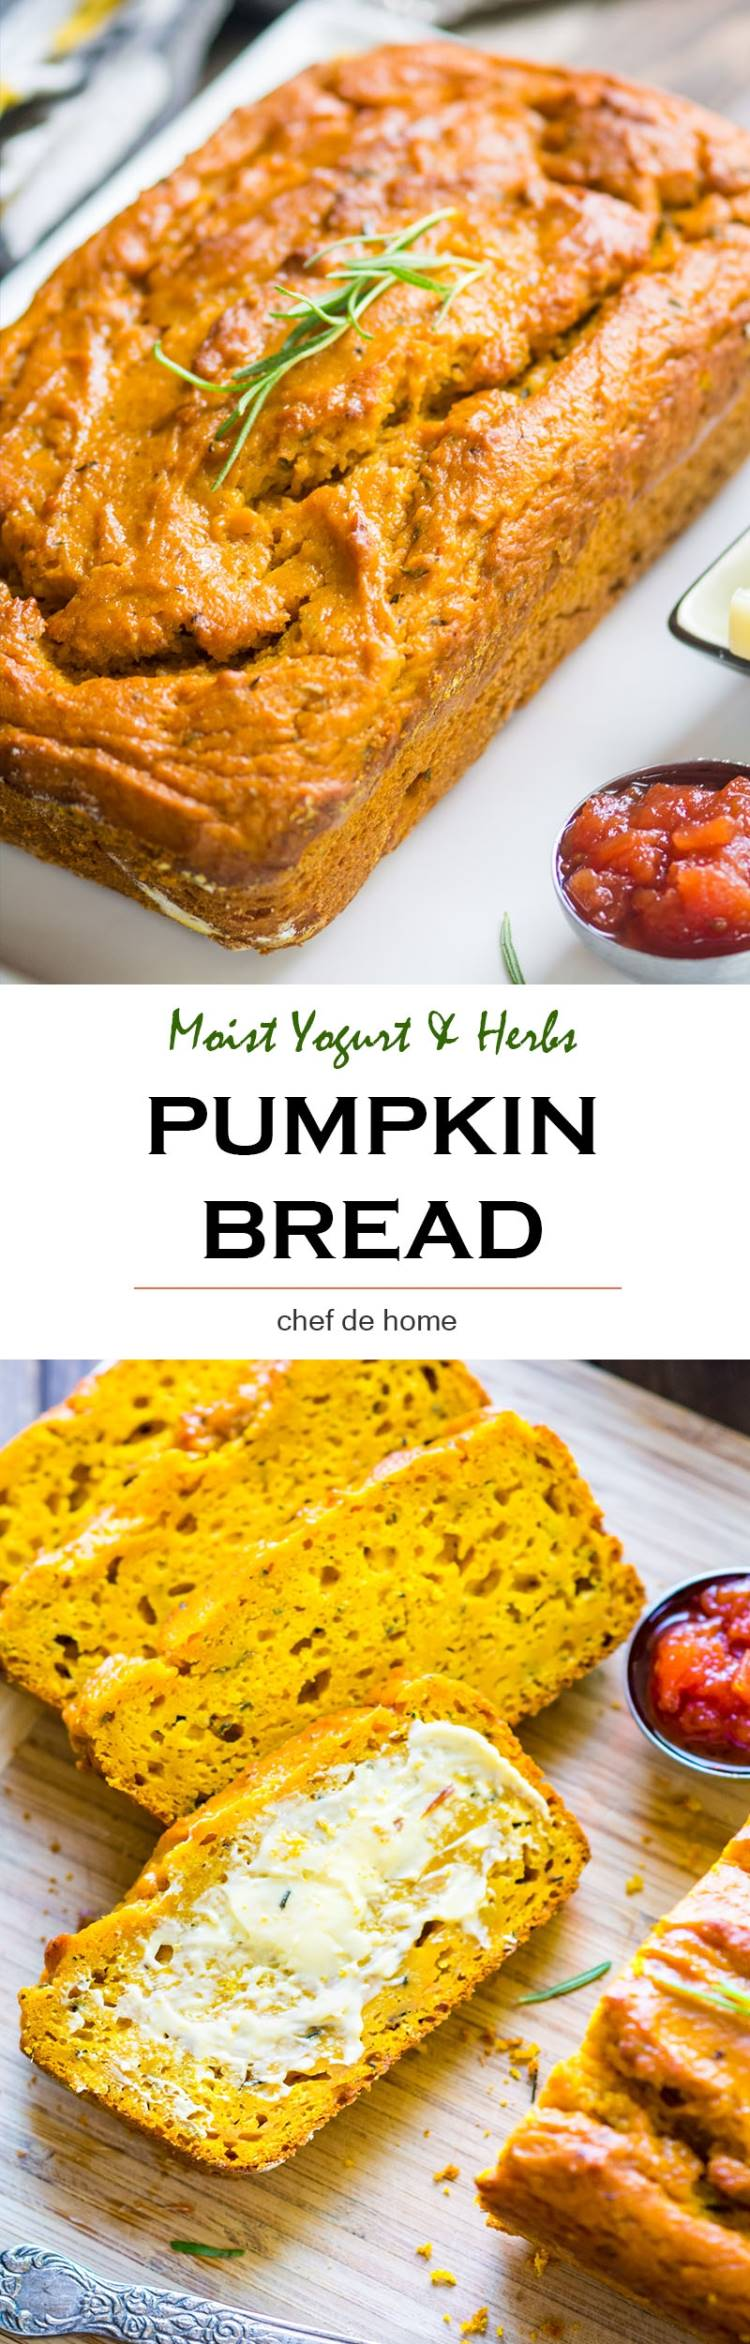 Fall favorite recipe of easy Pumpkin Bread for breakfast or dunk in soup for dinner | chefdehome.com